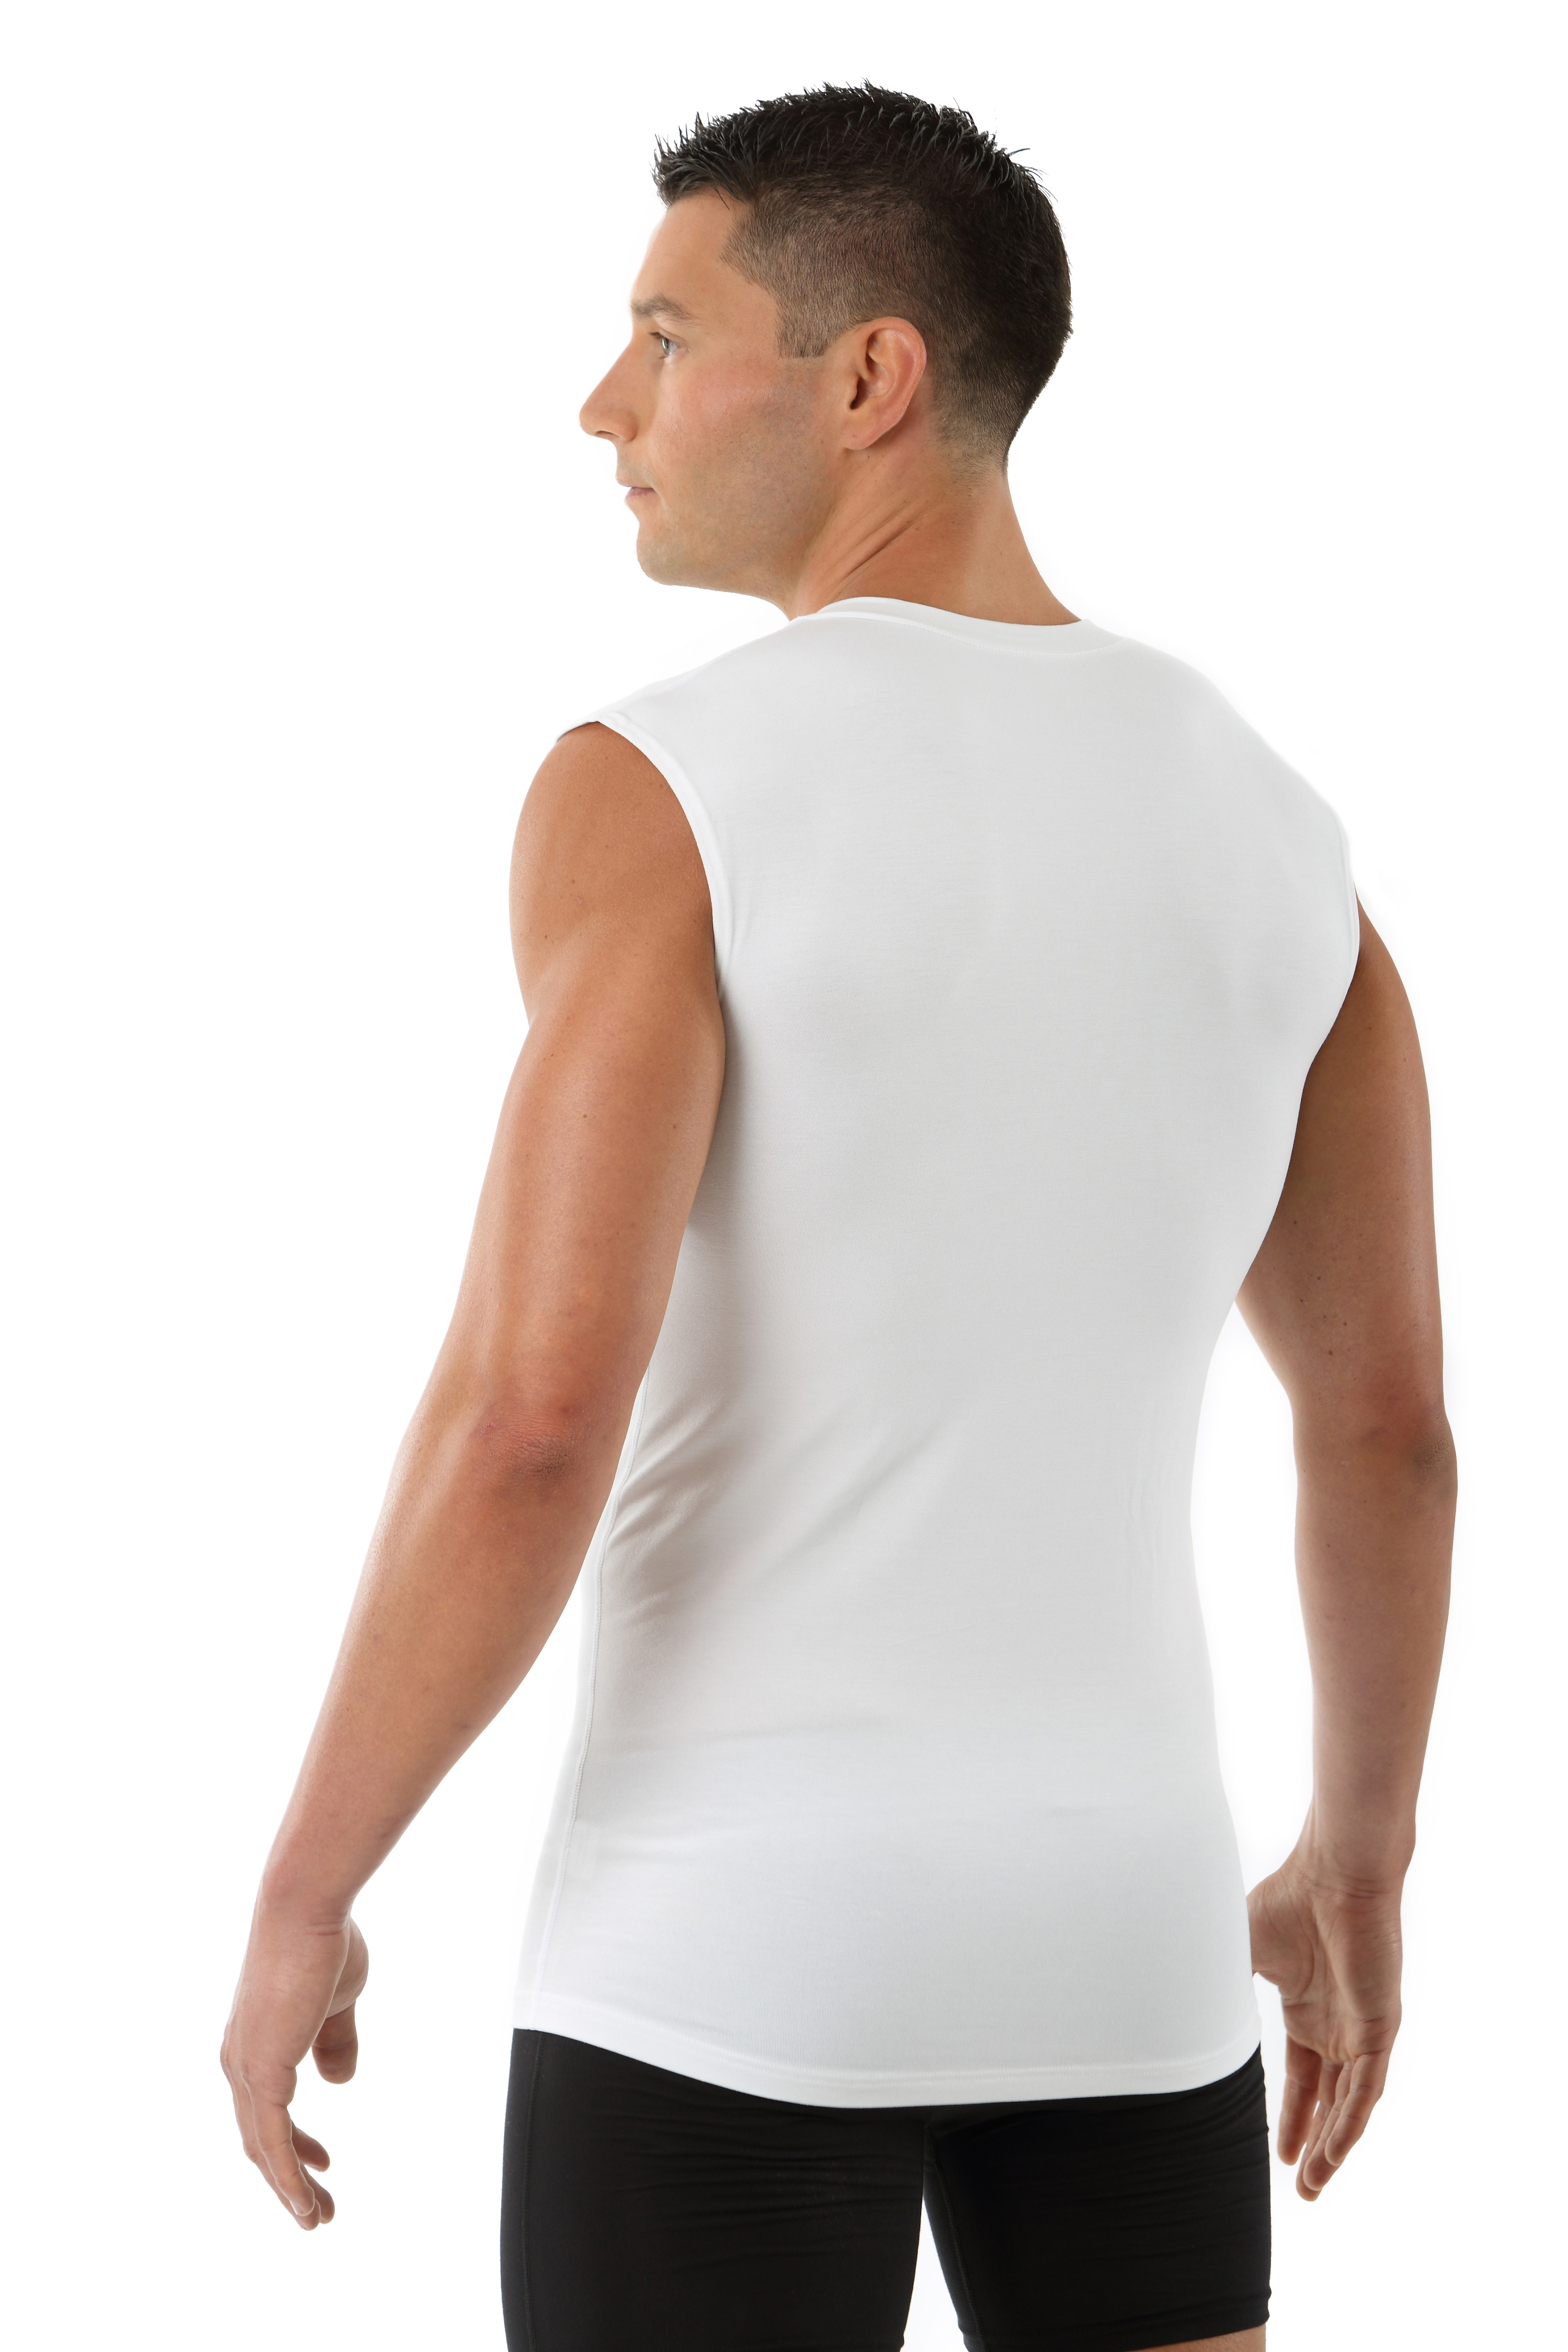 Find great deals on eBay for boys white undershirts. Shop with confidence.